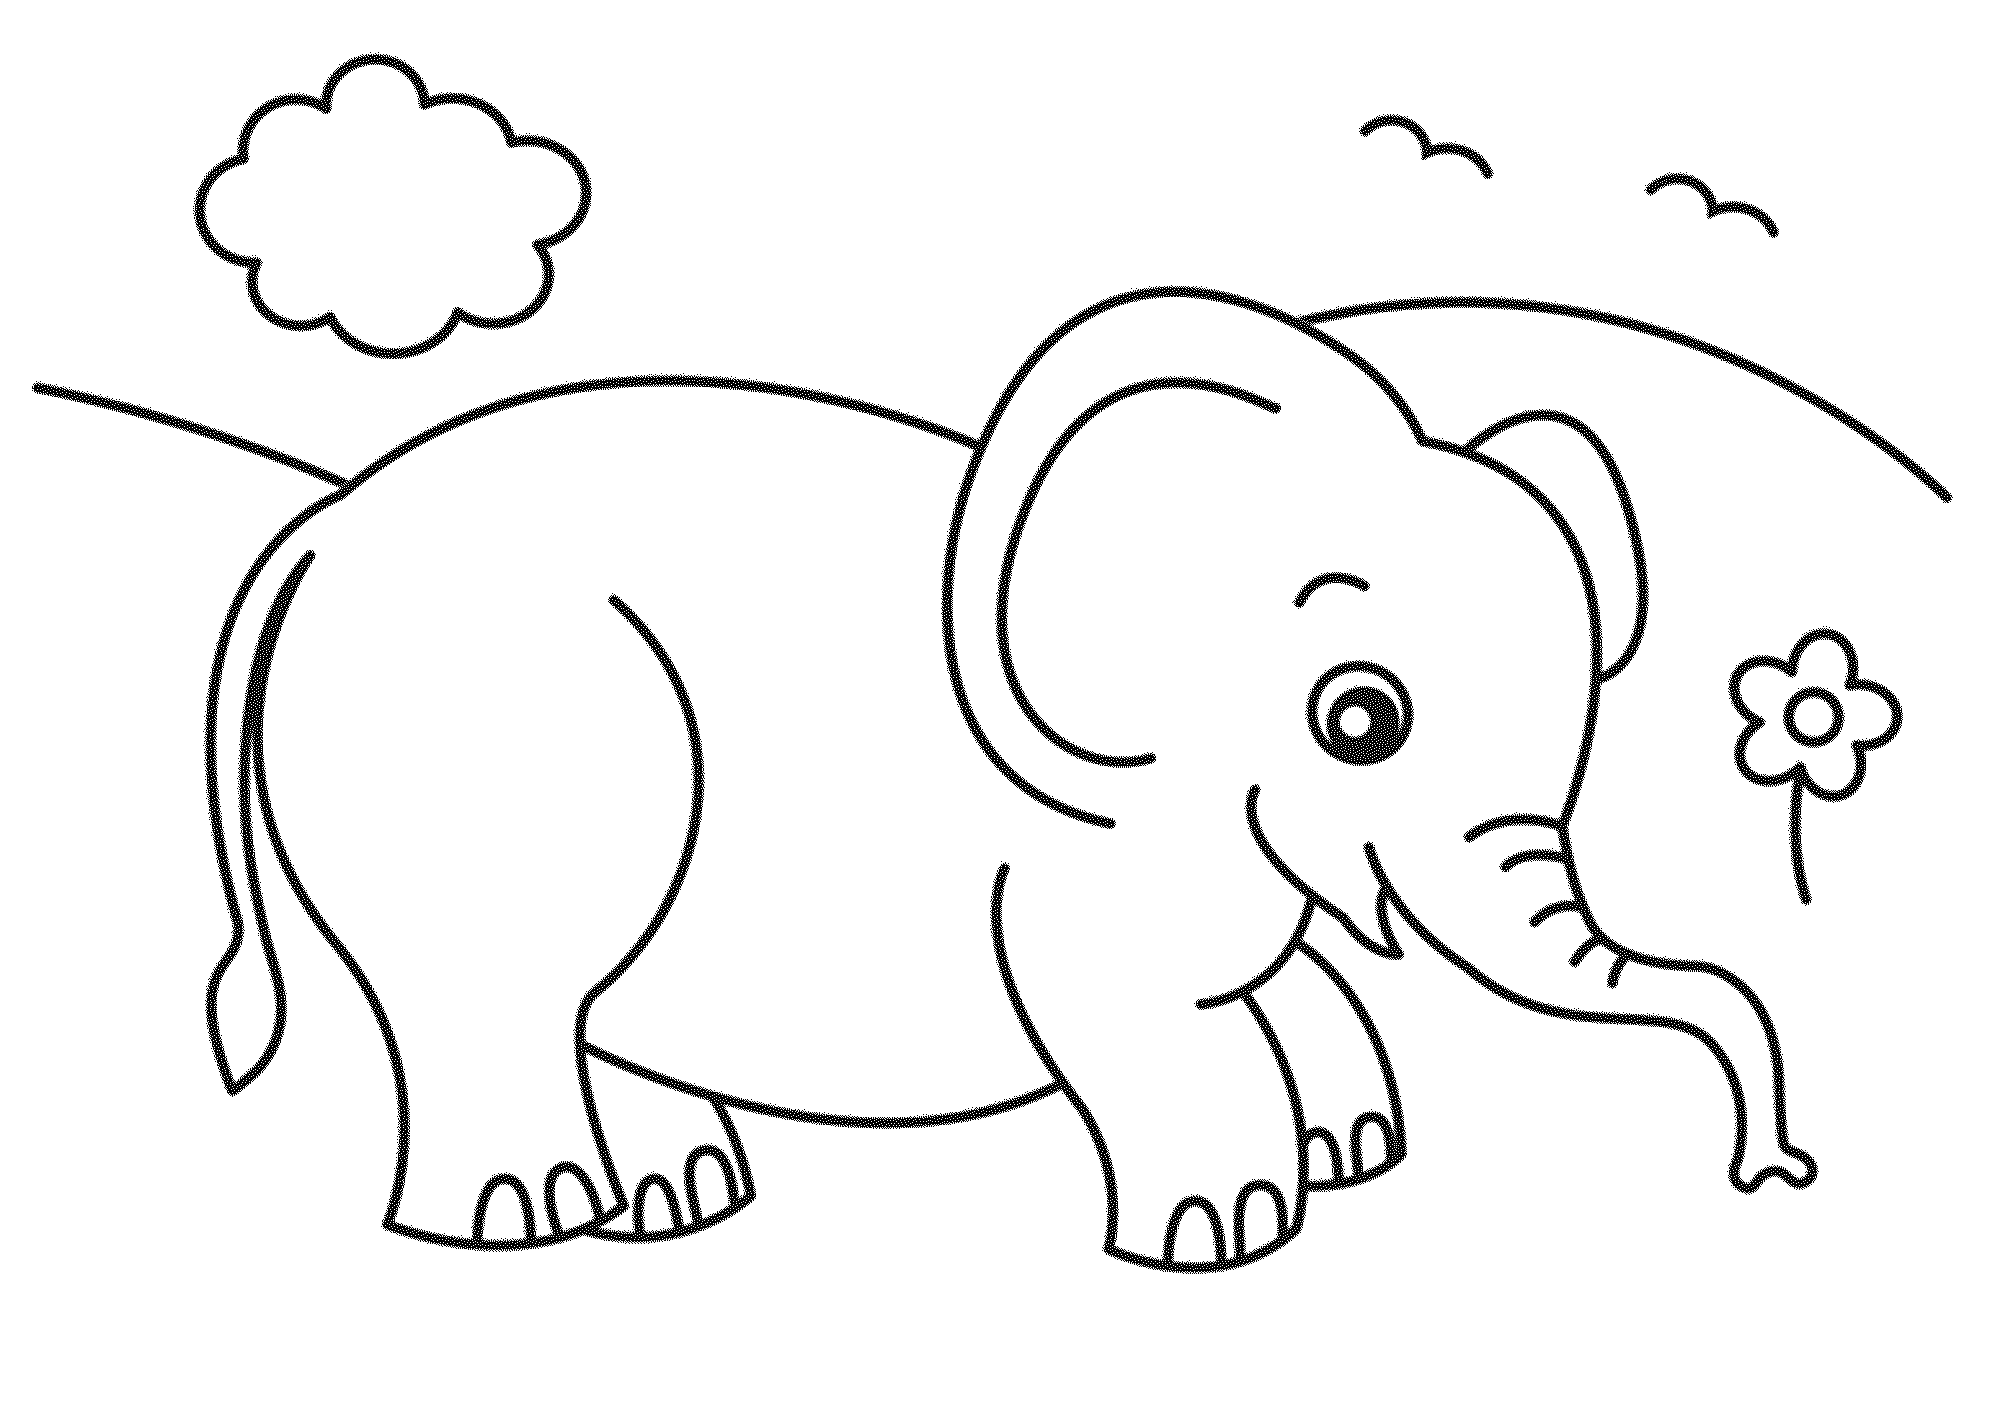 Baby Elephant Coloring Pages To Download And Print For Free Printable Elephant Coloring Pages